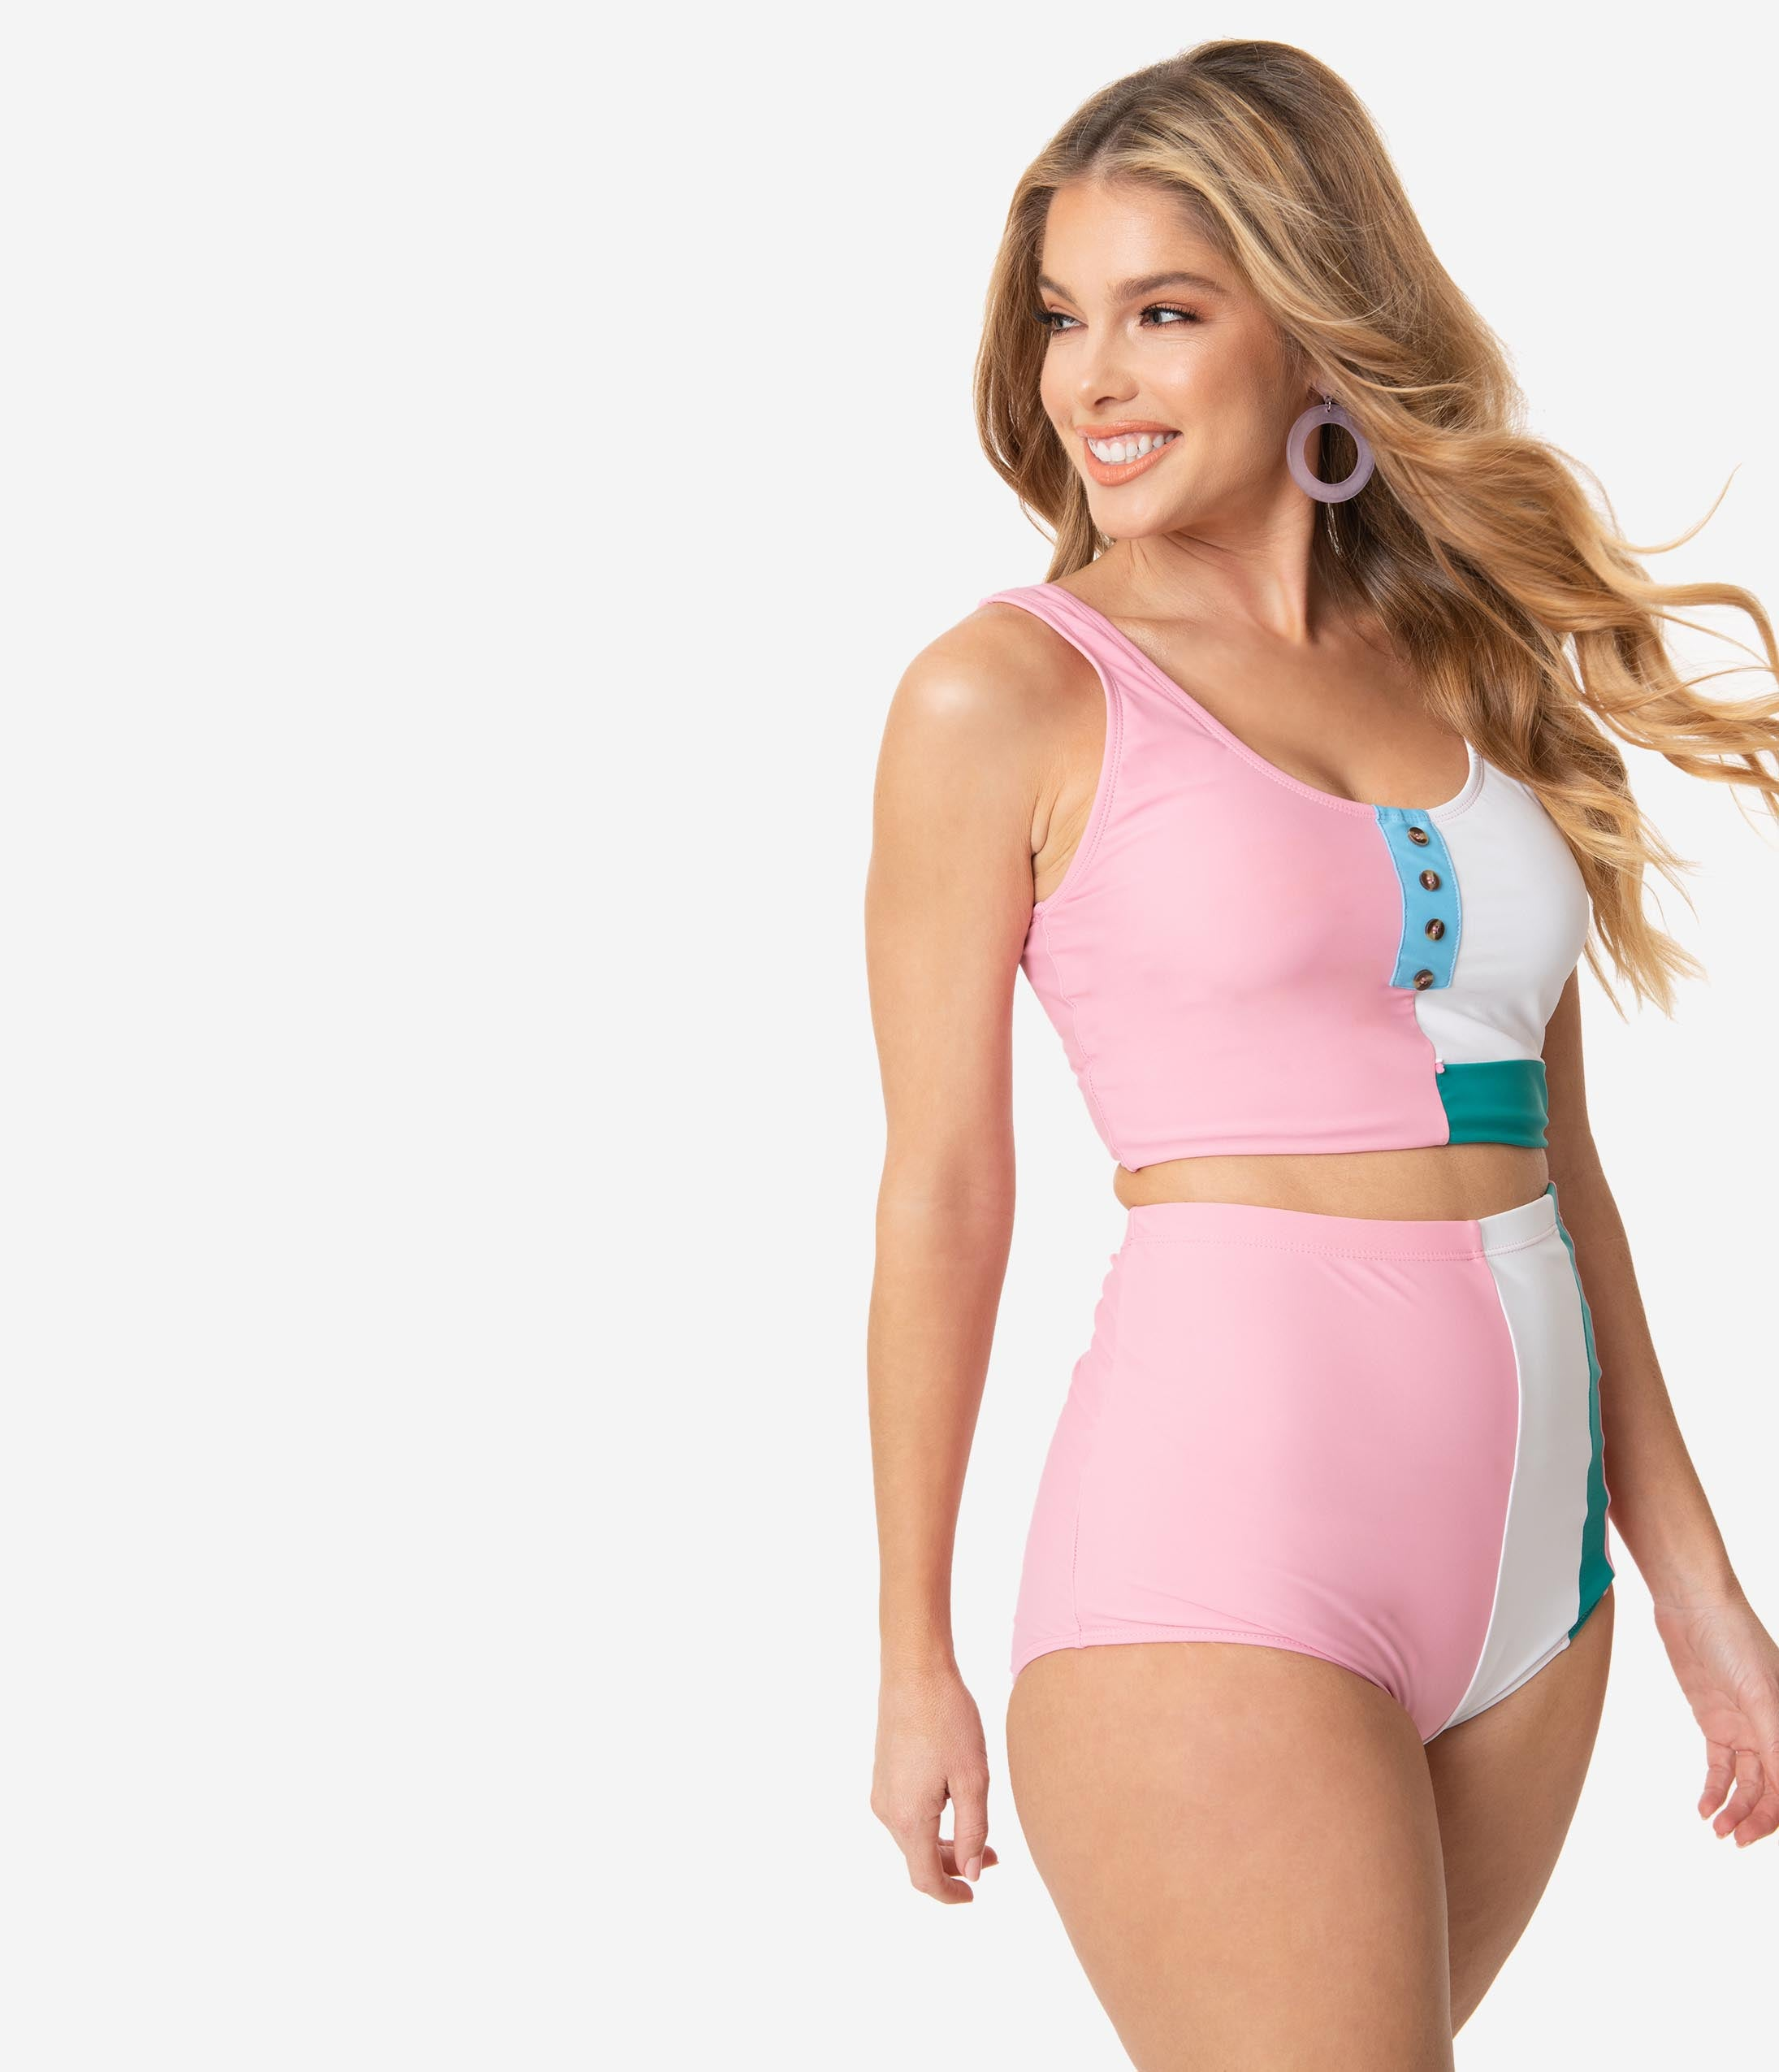 60s Swimsuits, 70s Bathing Suits | Retro Swimwear Pink  White Color Block Swim Crop Top $42.00 AT vintagedancer.com